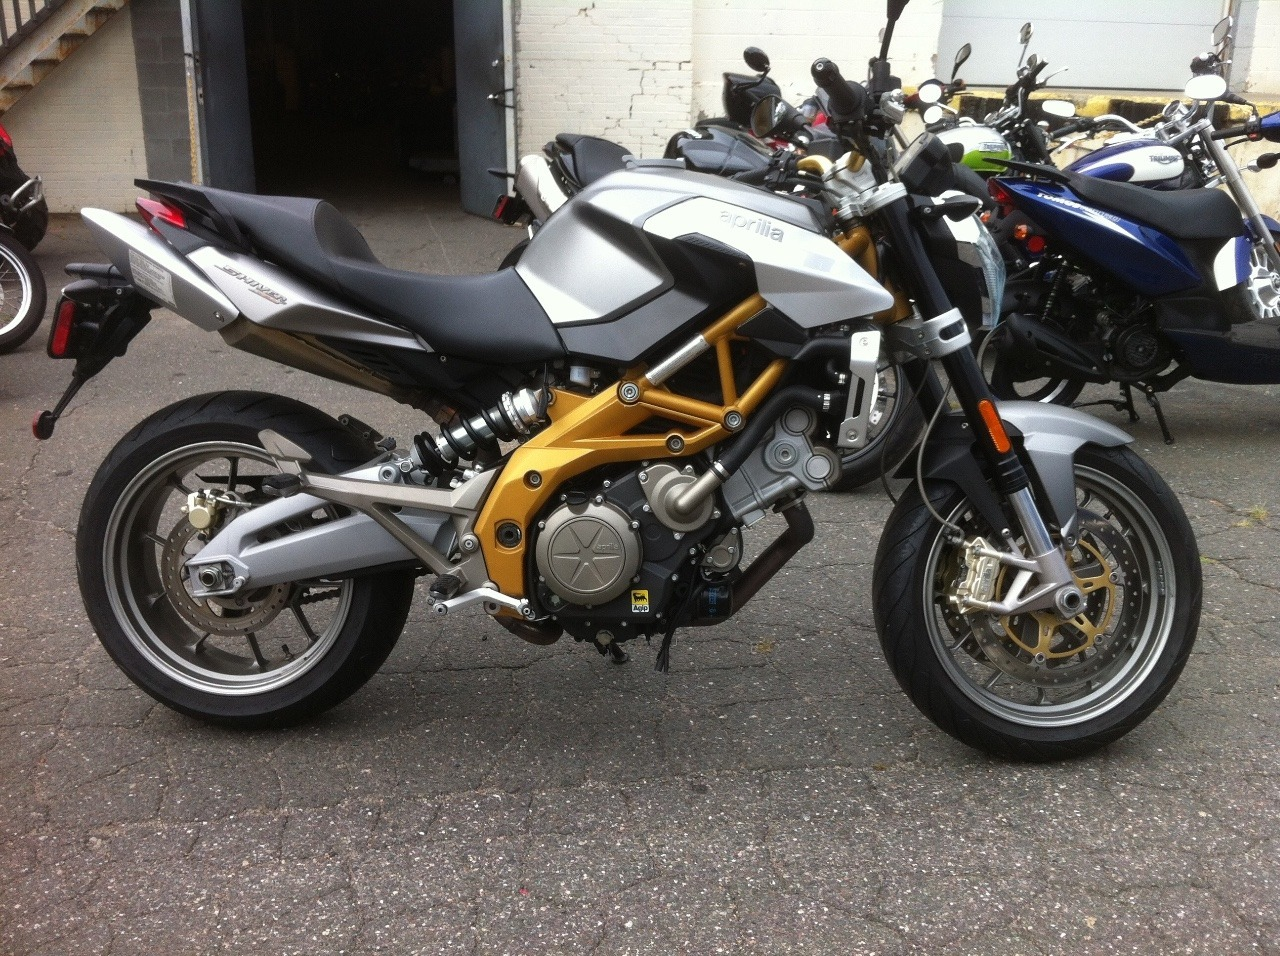 2008 Aprilia Shiver 750, motorcycle listing